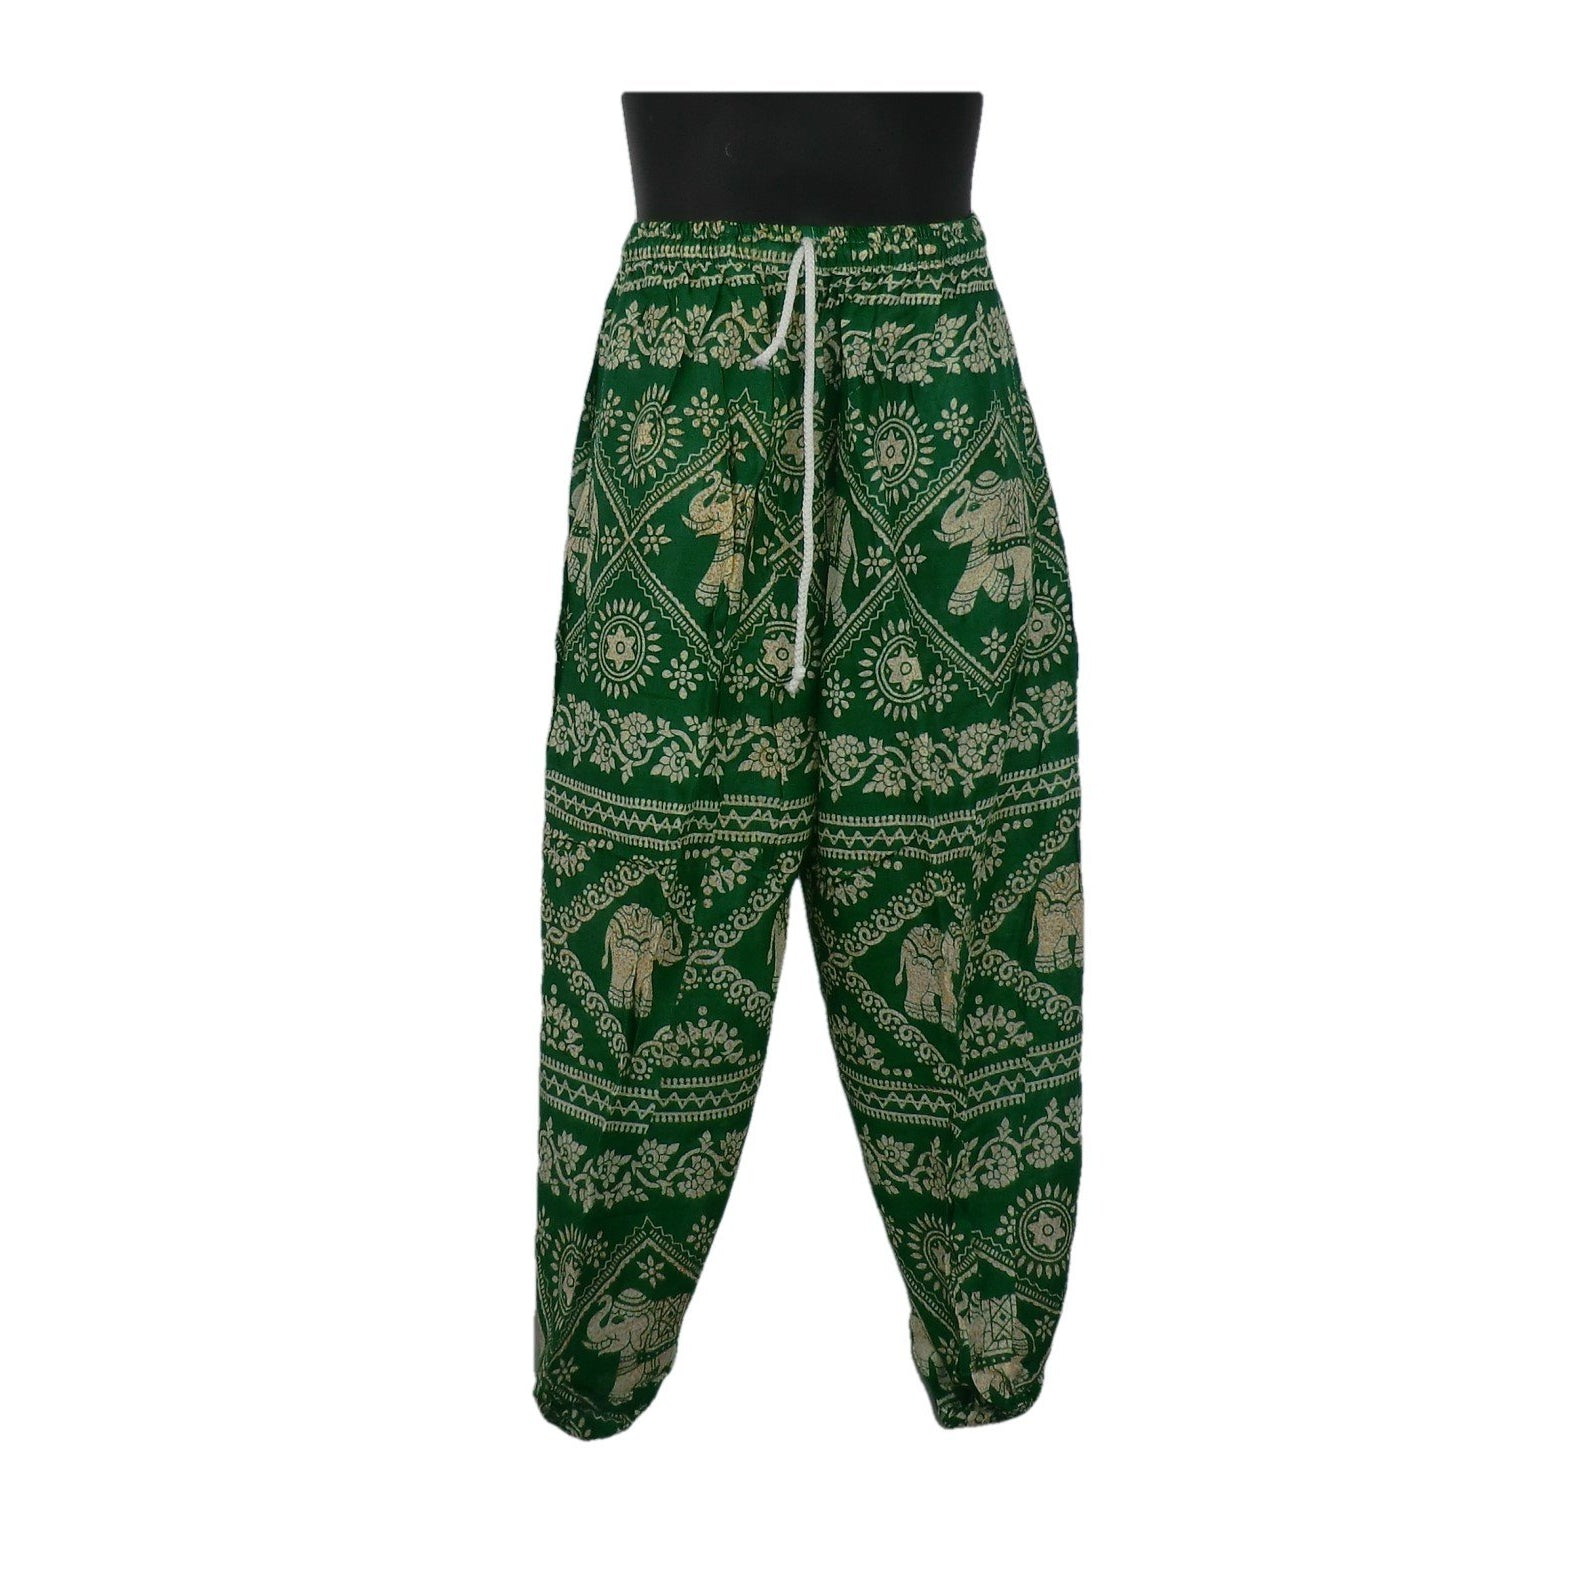 Green Elephant Trousers 5 - 7yrs - Matico